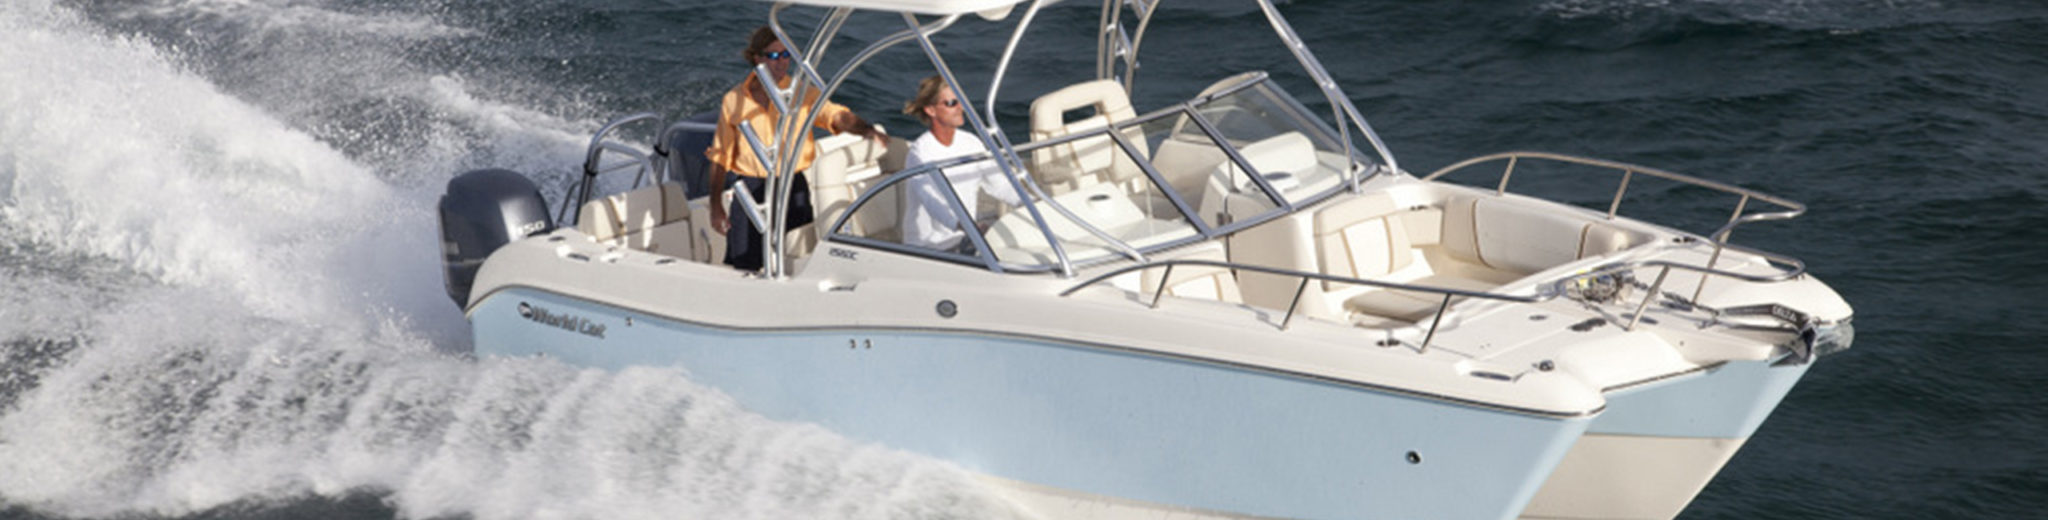 World Cat Boats for Sale Fort Myers